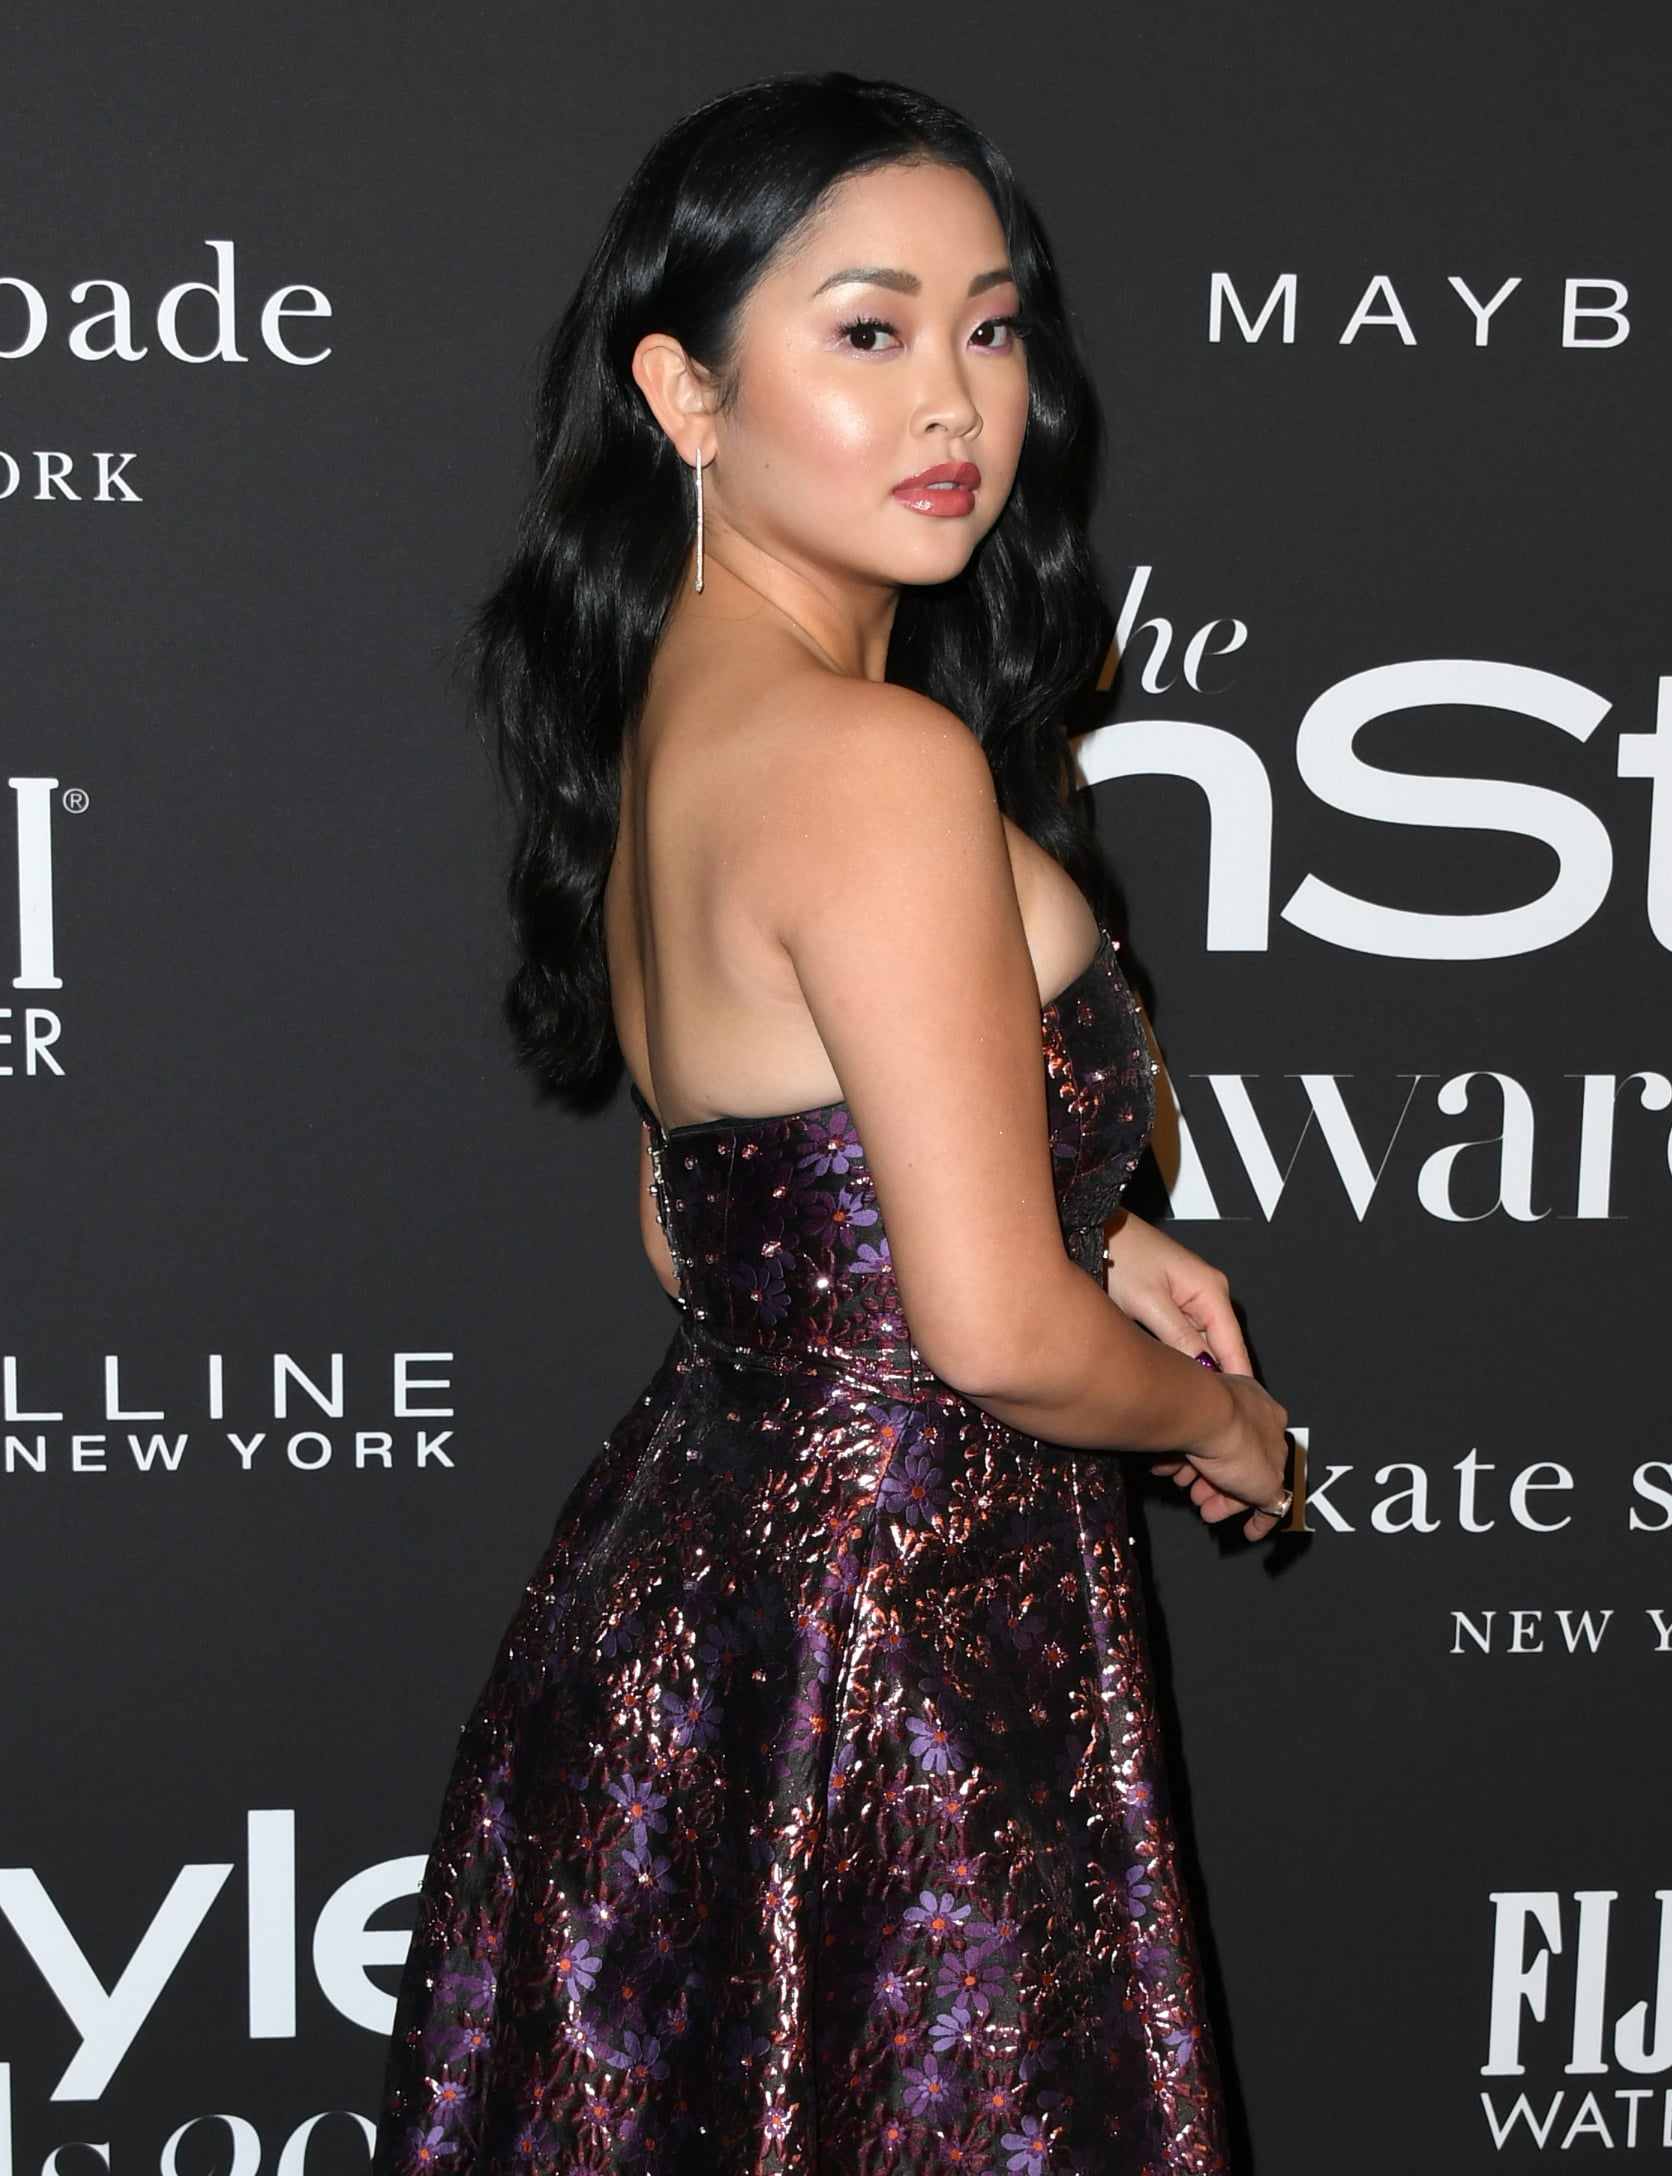 LOS ANGELES, CALIFORNIA - OCTOBER 21:  Lana Condor attends the 2019 InStyle Awards at The Getty Center on October 21, 2019 in Los Angeles, California. (Photo by Jon Kopaloff/Getty Images)